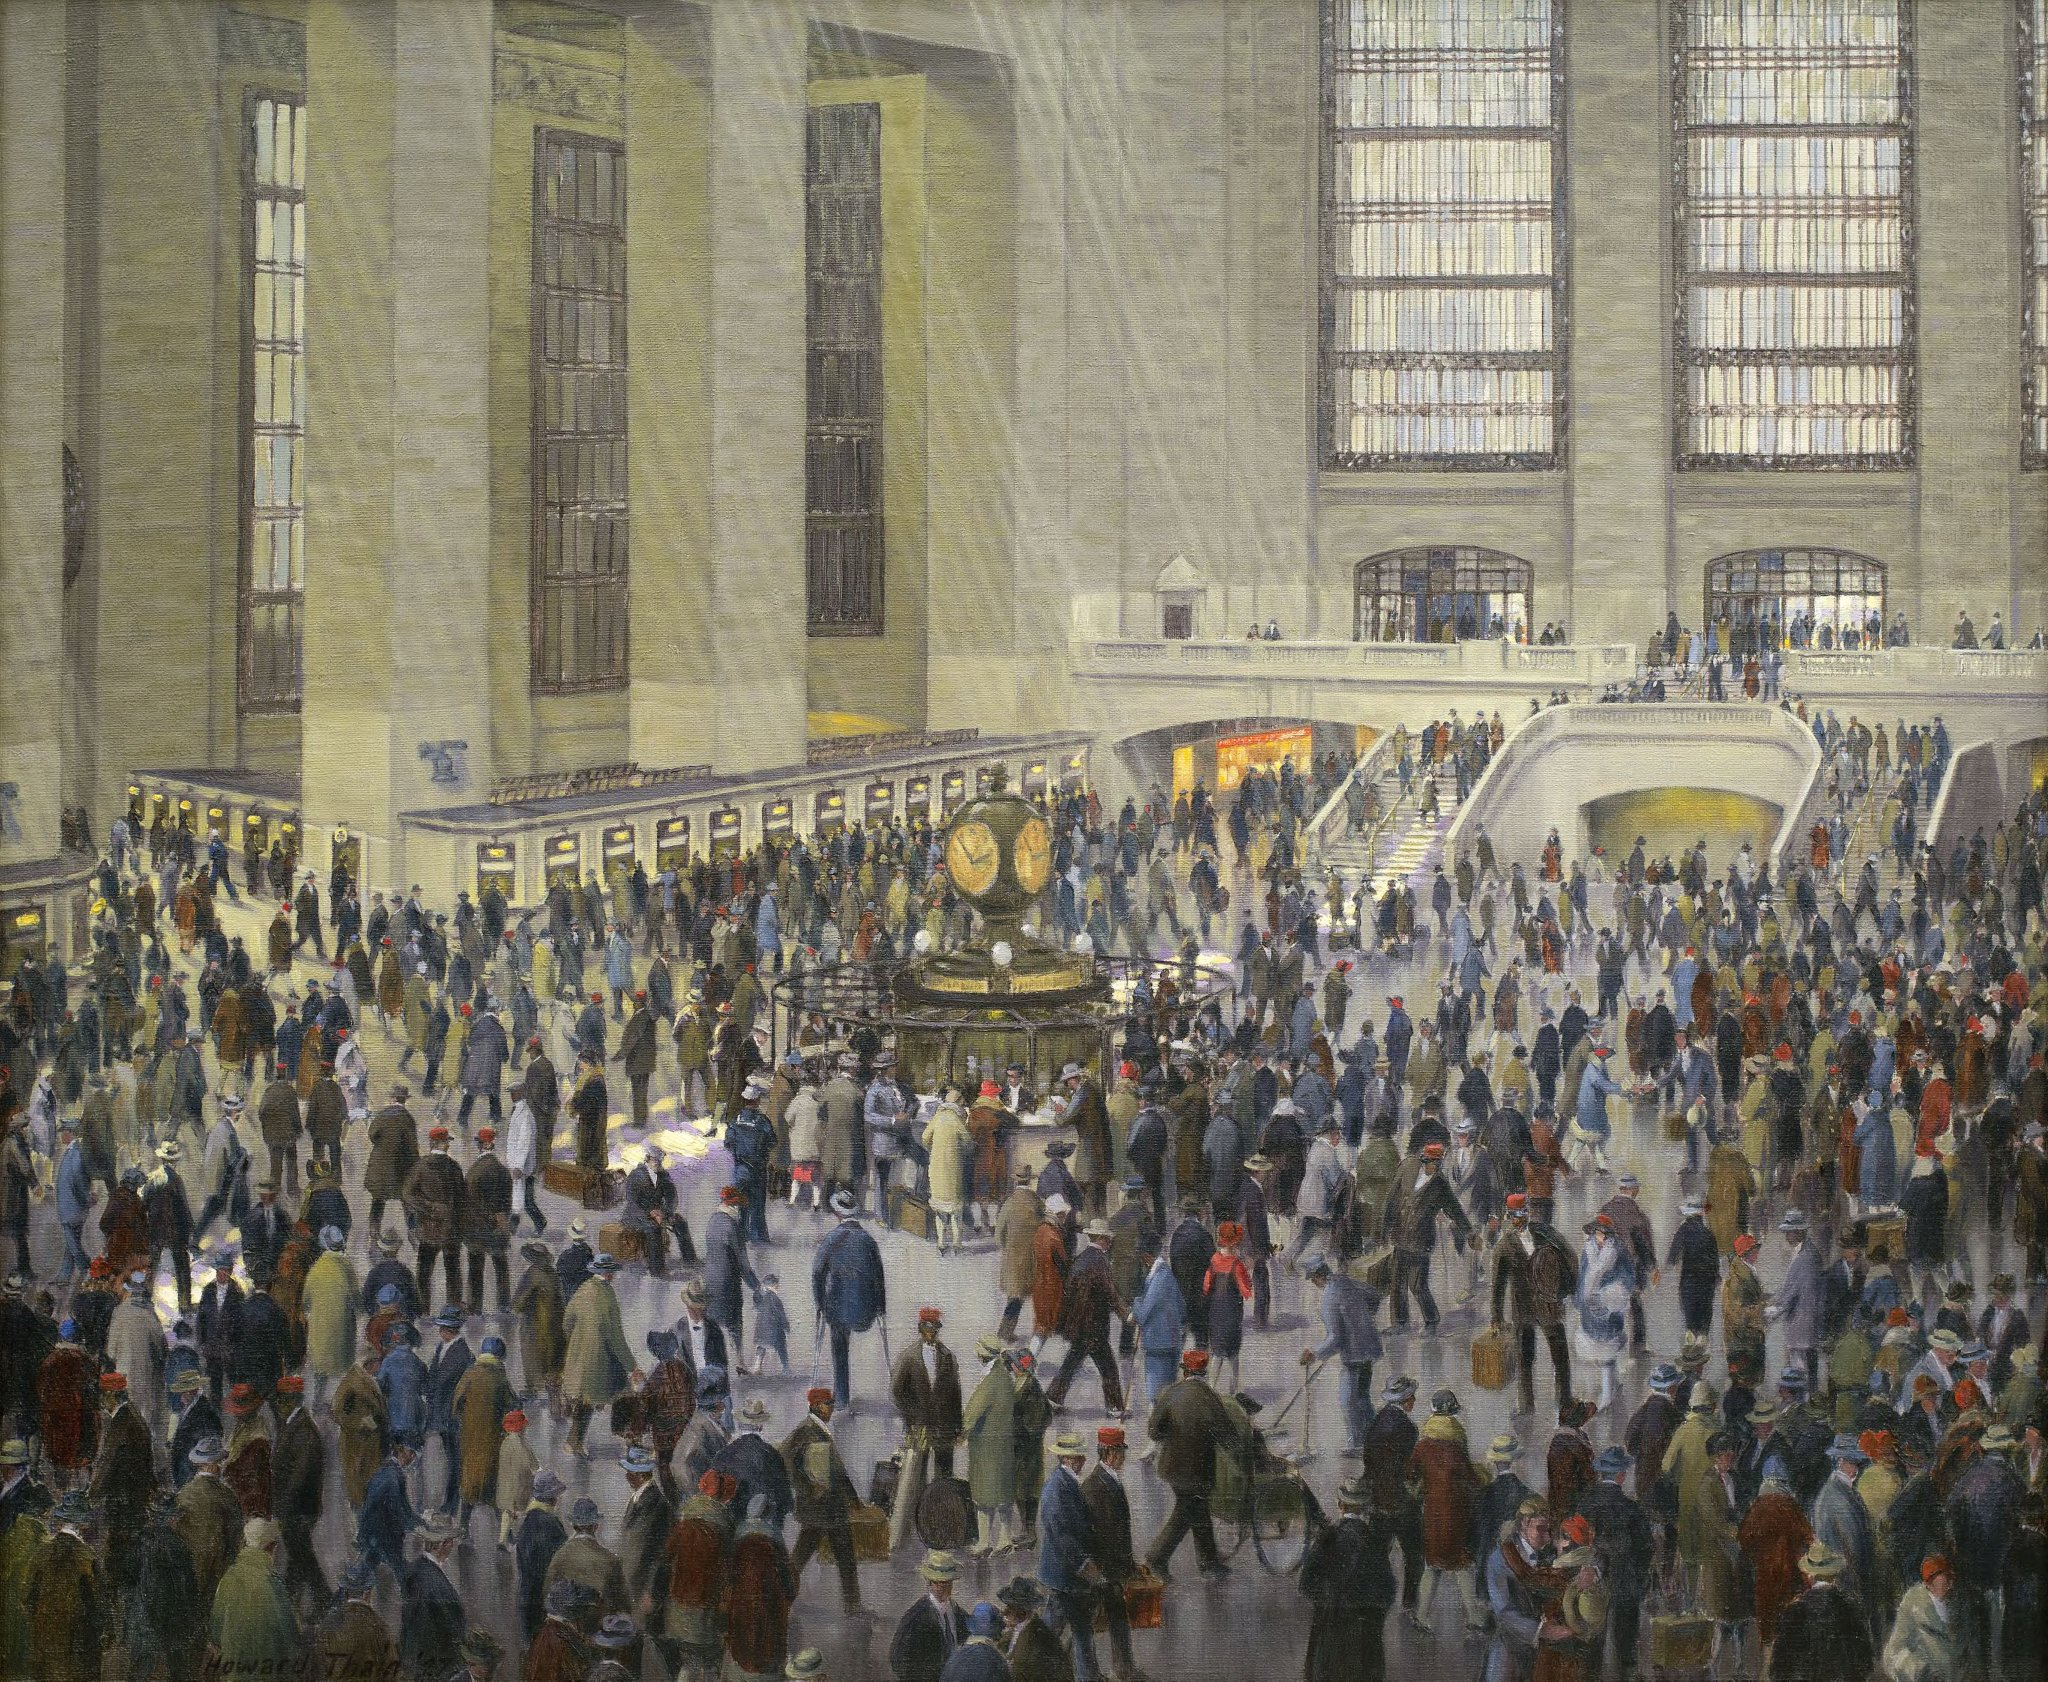 🕰️🥰 Years ago, they made a promise to meet under the clock at Grand Central & reunite if either of them was single.   Now as the fateful day approaches, will holiday crowds stand in the way of their Christmas happily ever after? #MuseumHolidayMovies https://t.co/vzpPHrBWbb